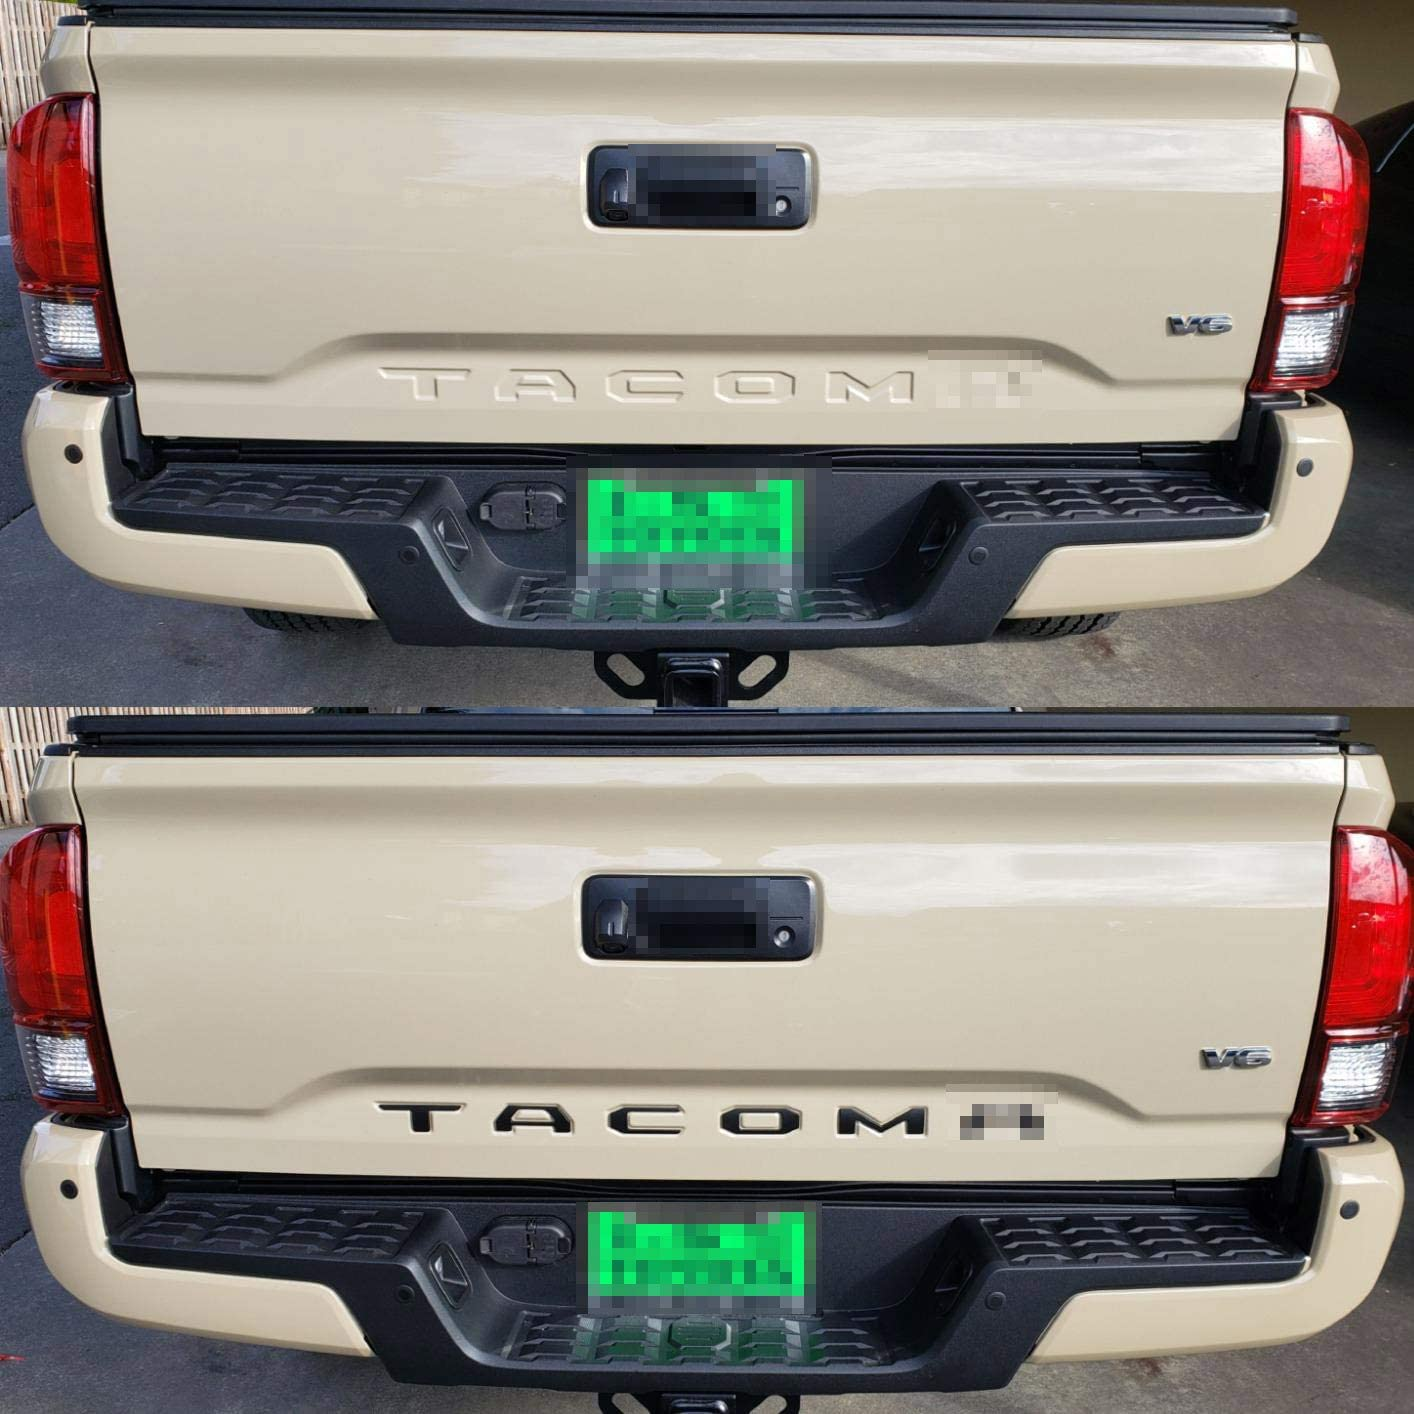 Plastic Inserts with 3M Adhesive Backing Replacement for 2016 2017 2018 2019 2020 2021 Toyota TACOMA Matte Black GLAAPER 3D Raised Tailgate Insert Letters Rear Emblems